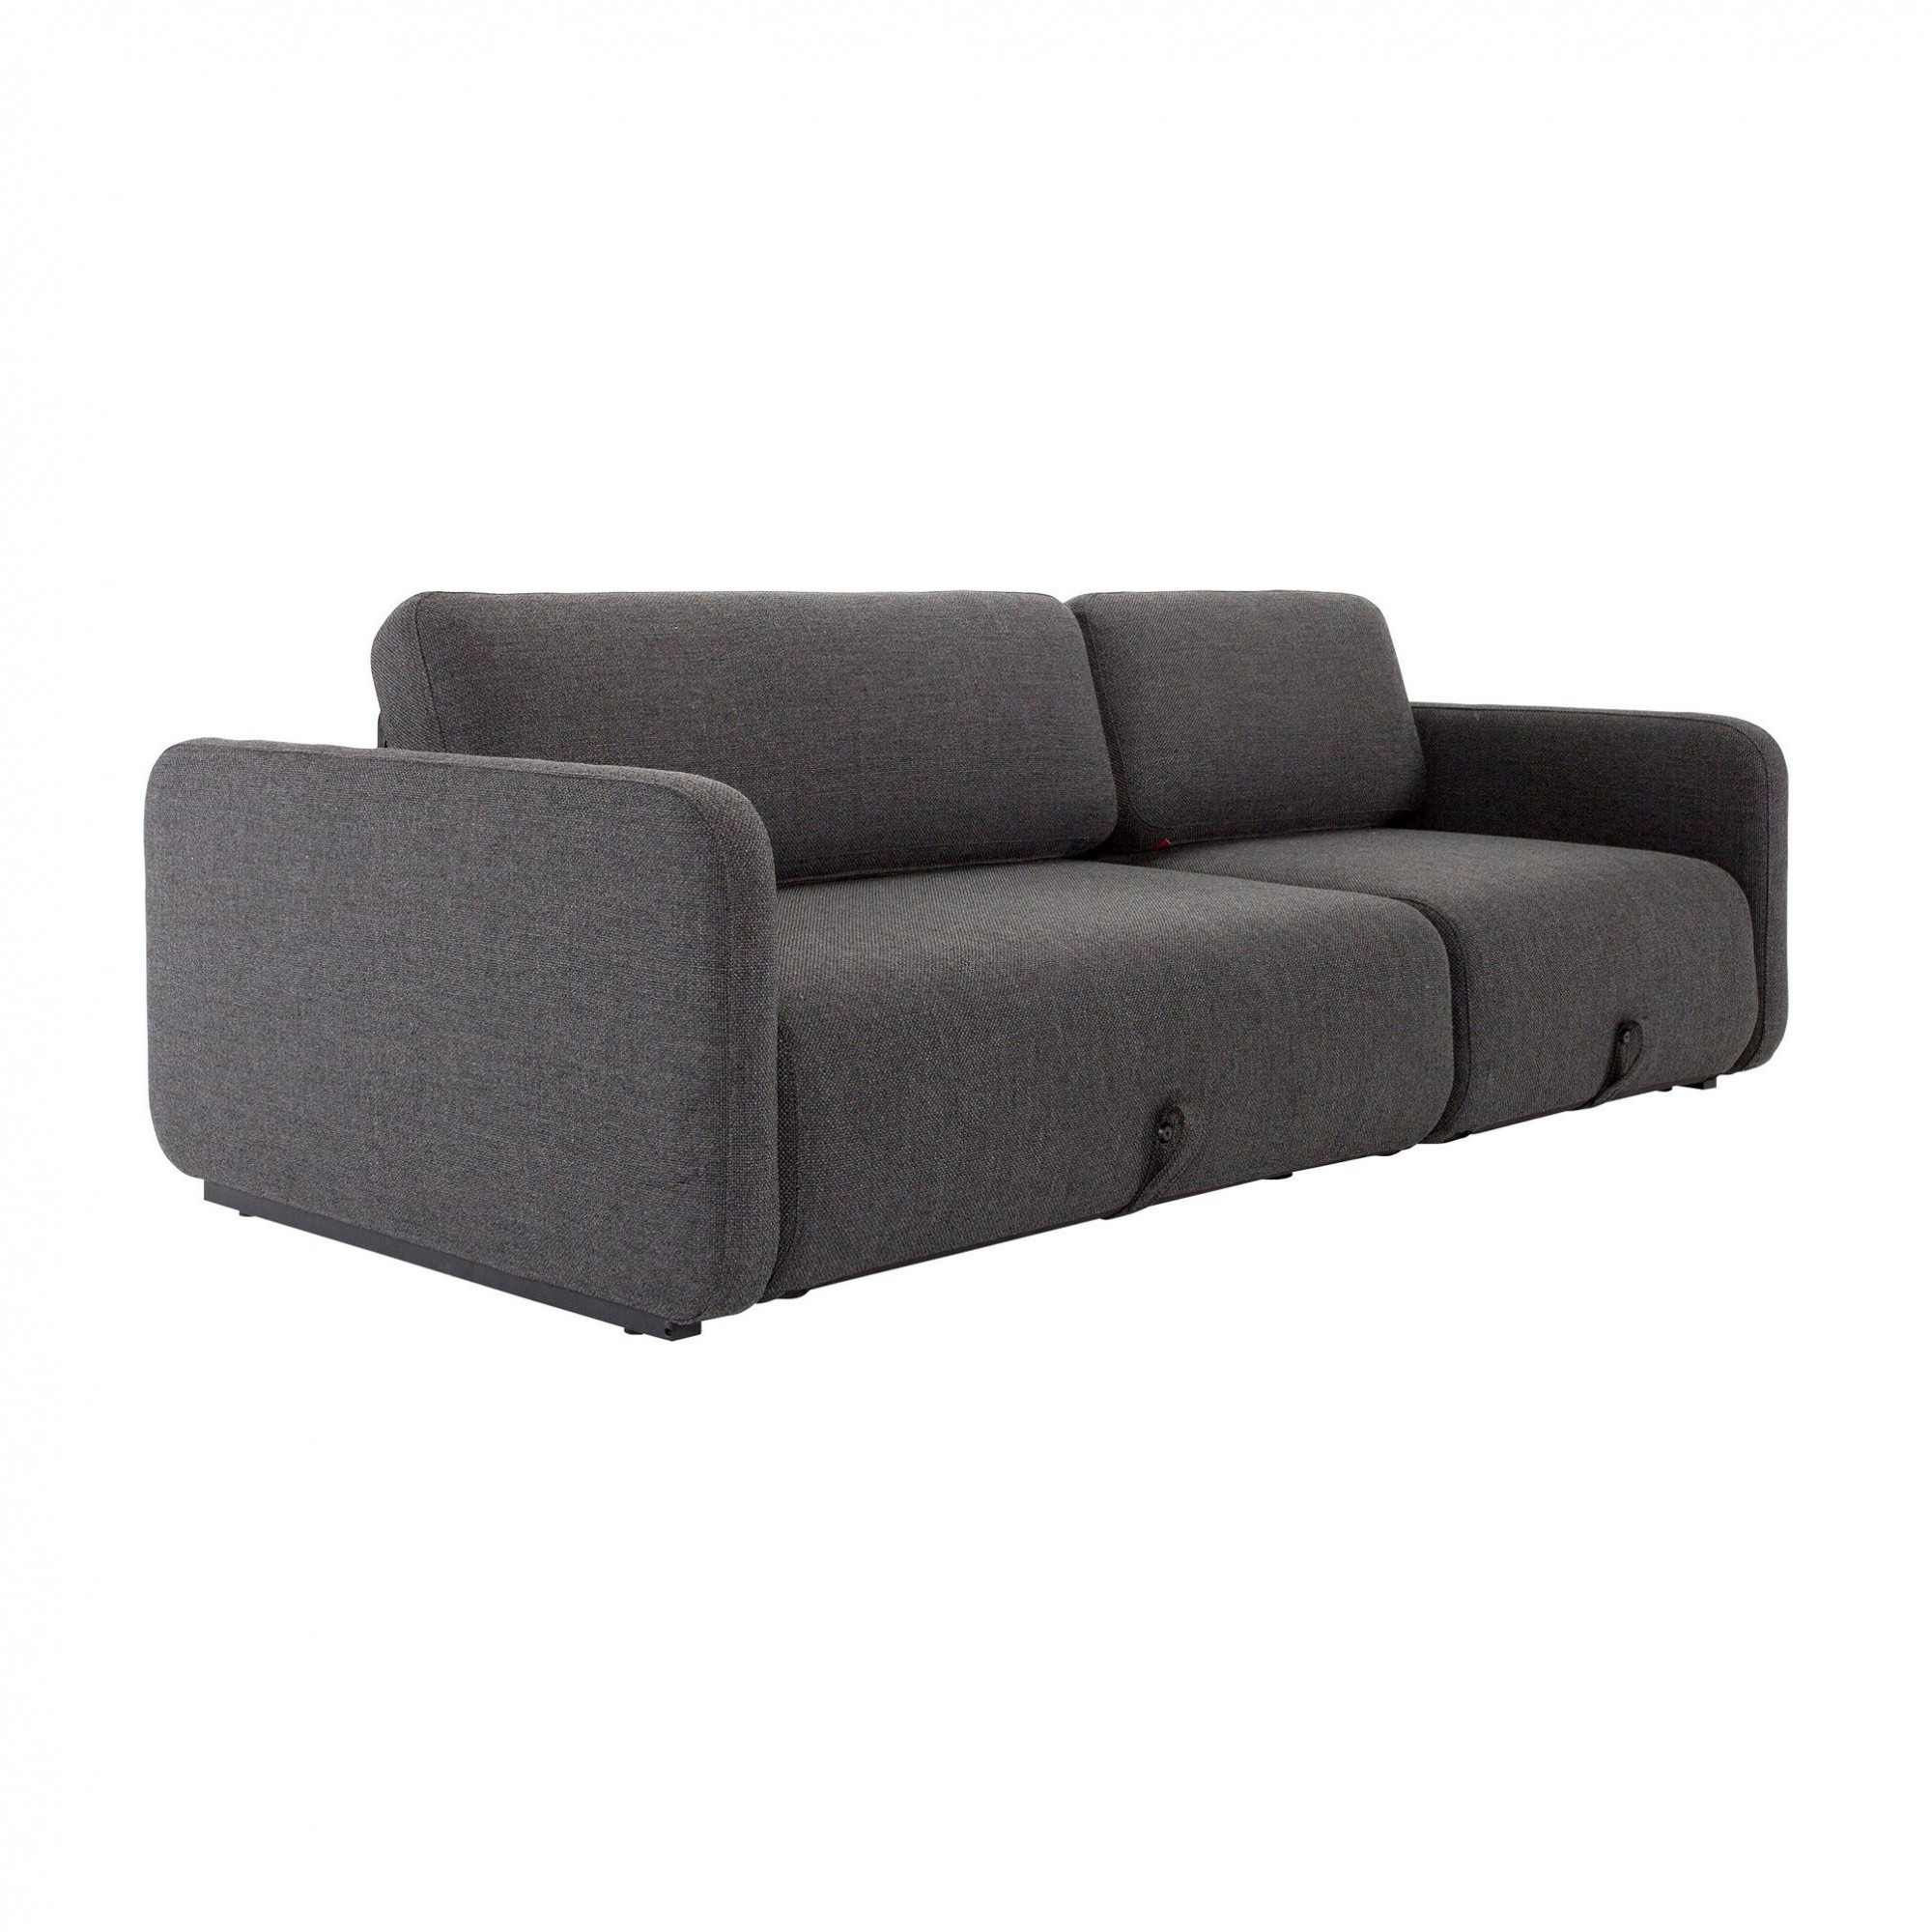 Innovation Vogan Sofa Bed 217x120cm